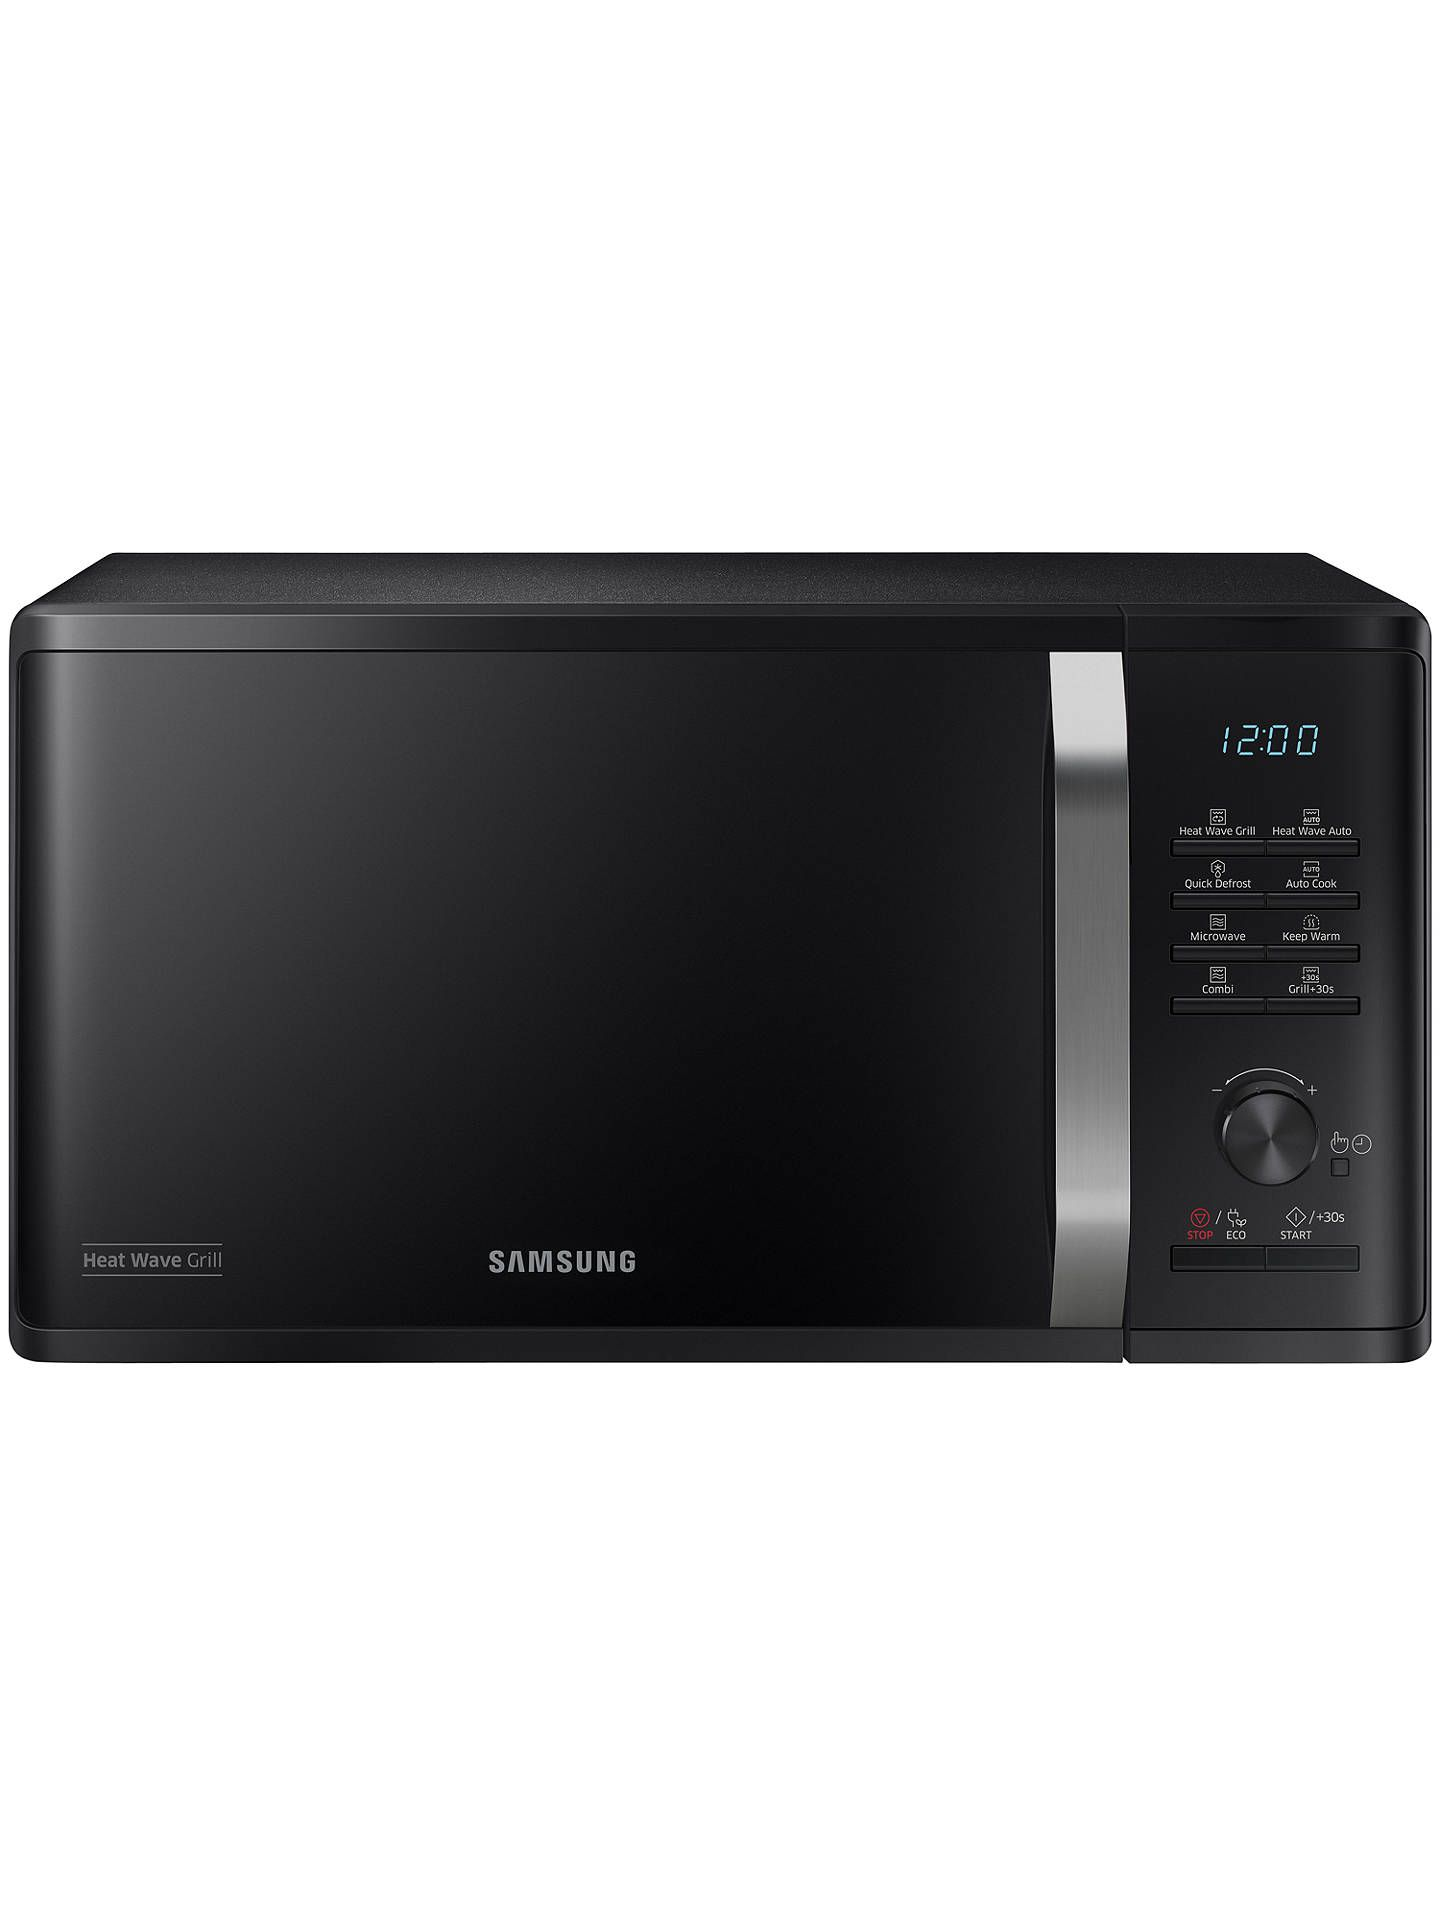 Buysamsung Mg23k3575ak Eu Freestanding Microwave Oven With Grill Black Online At Johnlewis Com Microwave Oven Microwave Built In Grill